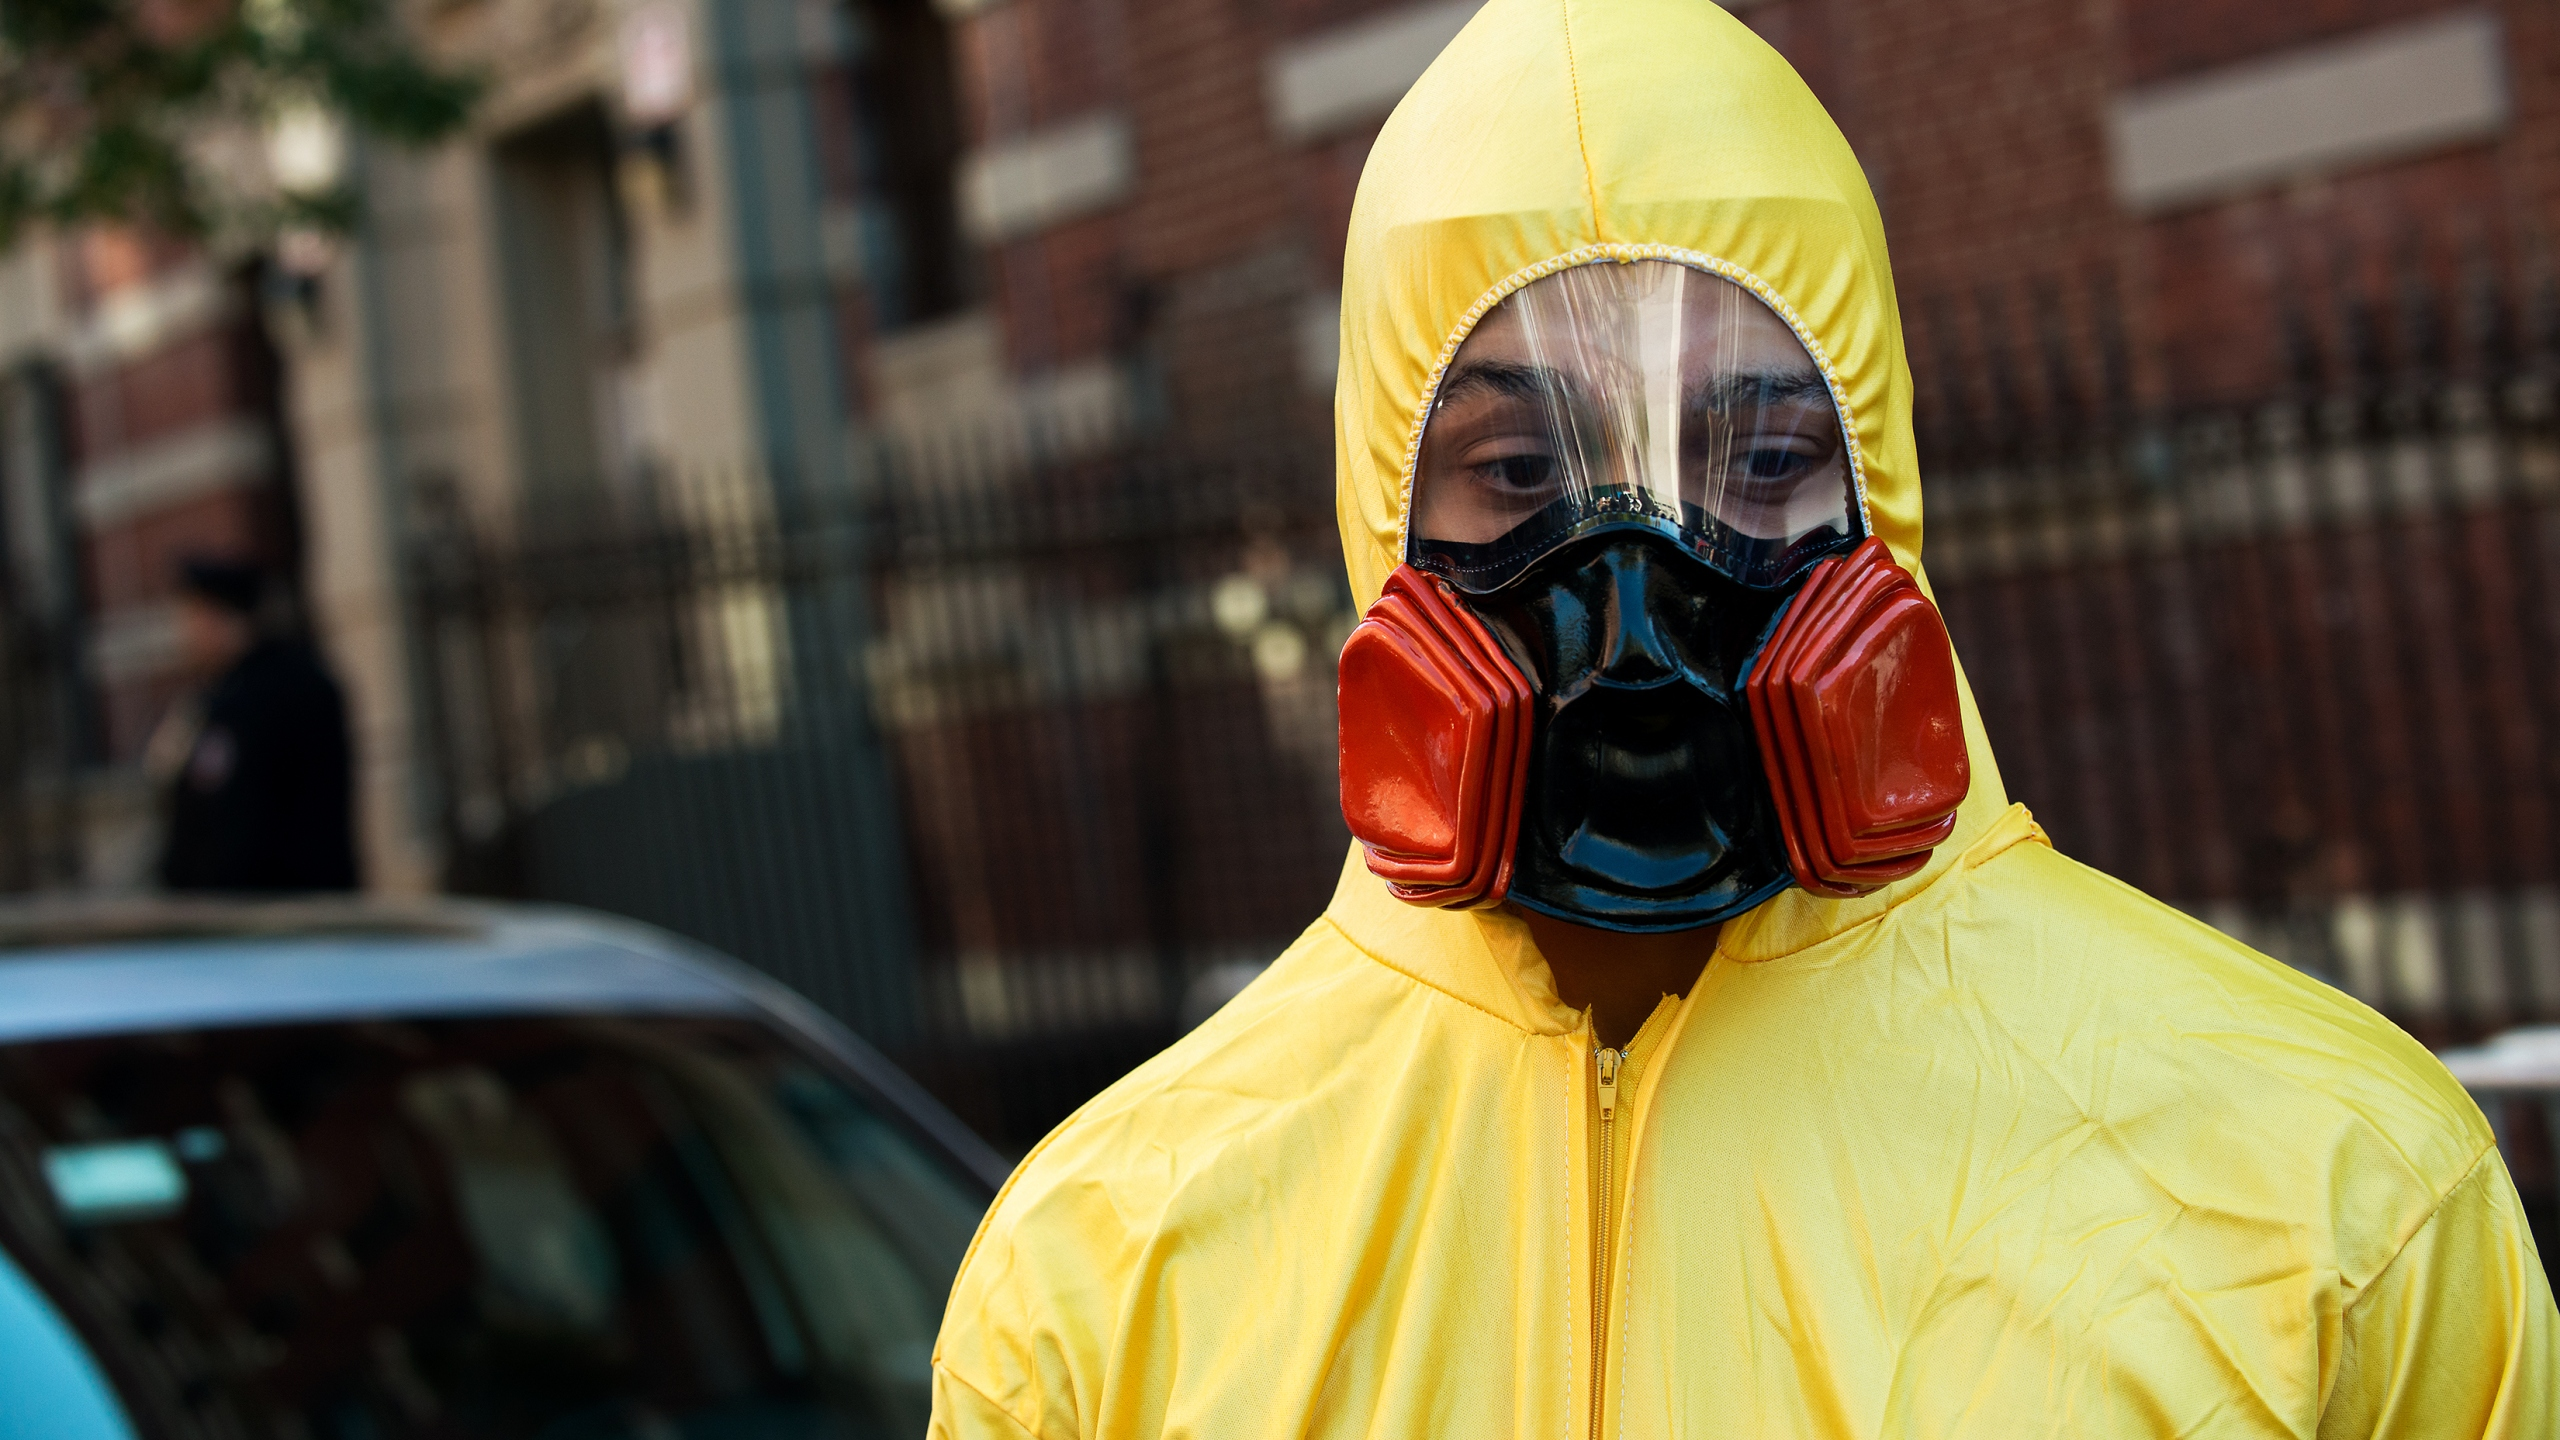 A young man, dressed in a biohazard costume, stands on the corner of 546 West 147th Street on Saturday, Oct. 25, 2014, in New York City. (Credit: Bryan Thomas/Getty Images)